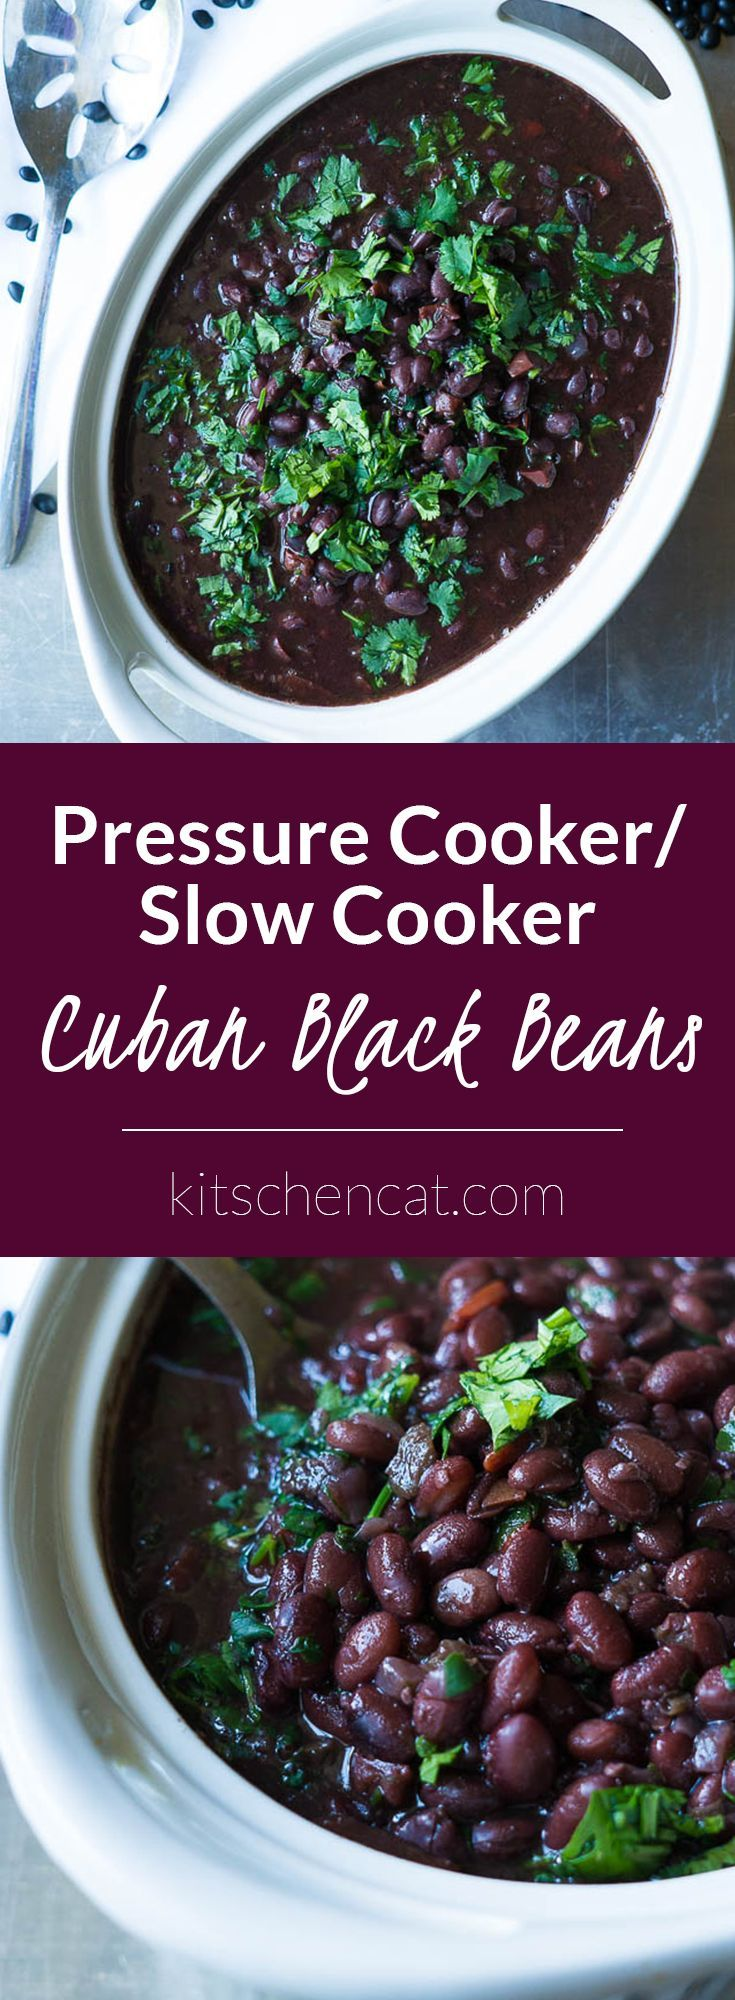 These Pressure/Slow Cooker Cuban Black Beans are filled with lime juice, a trio of red bell pepper, jalapeño, and red onion, and finished off with bunches of fresh cilantro!